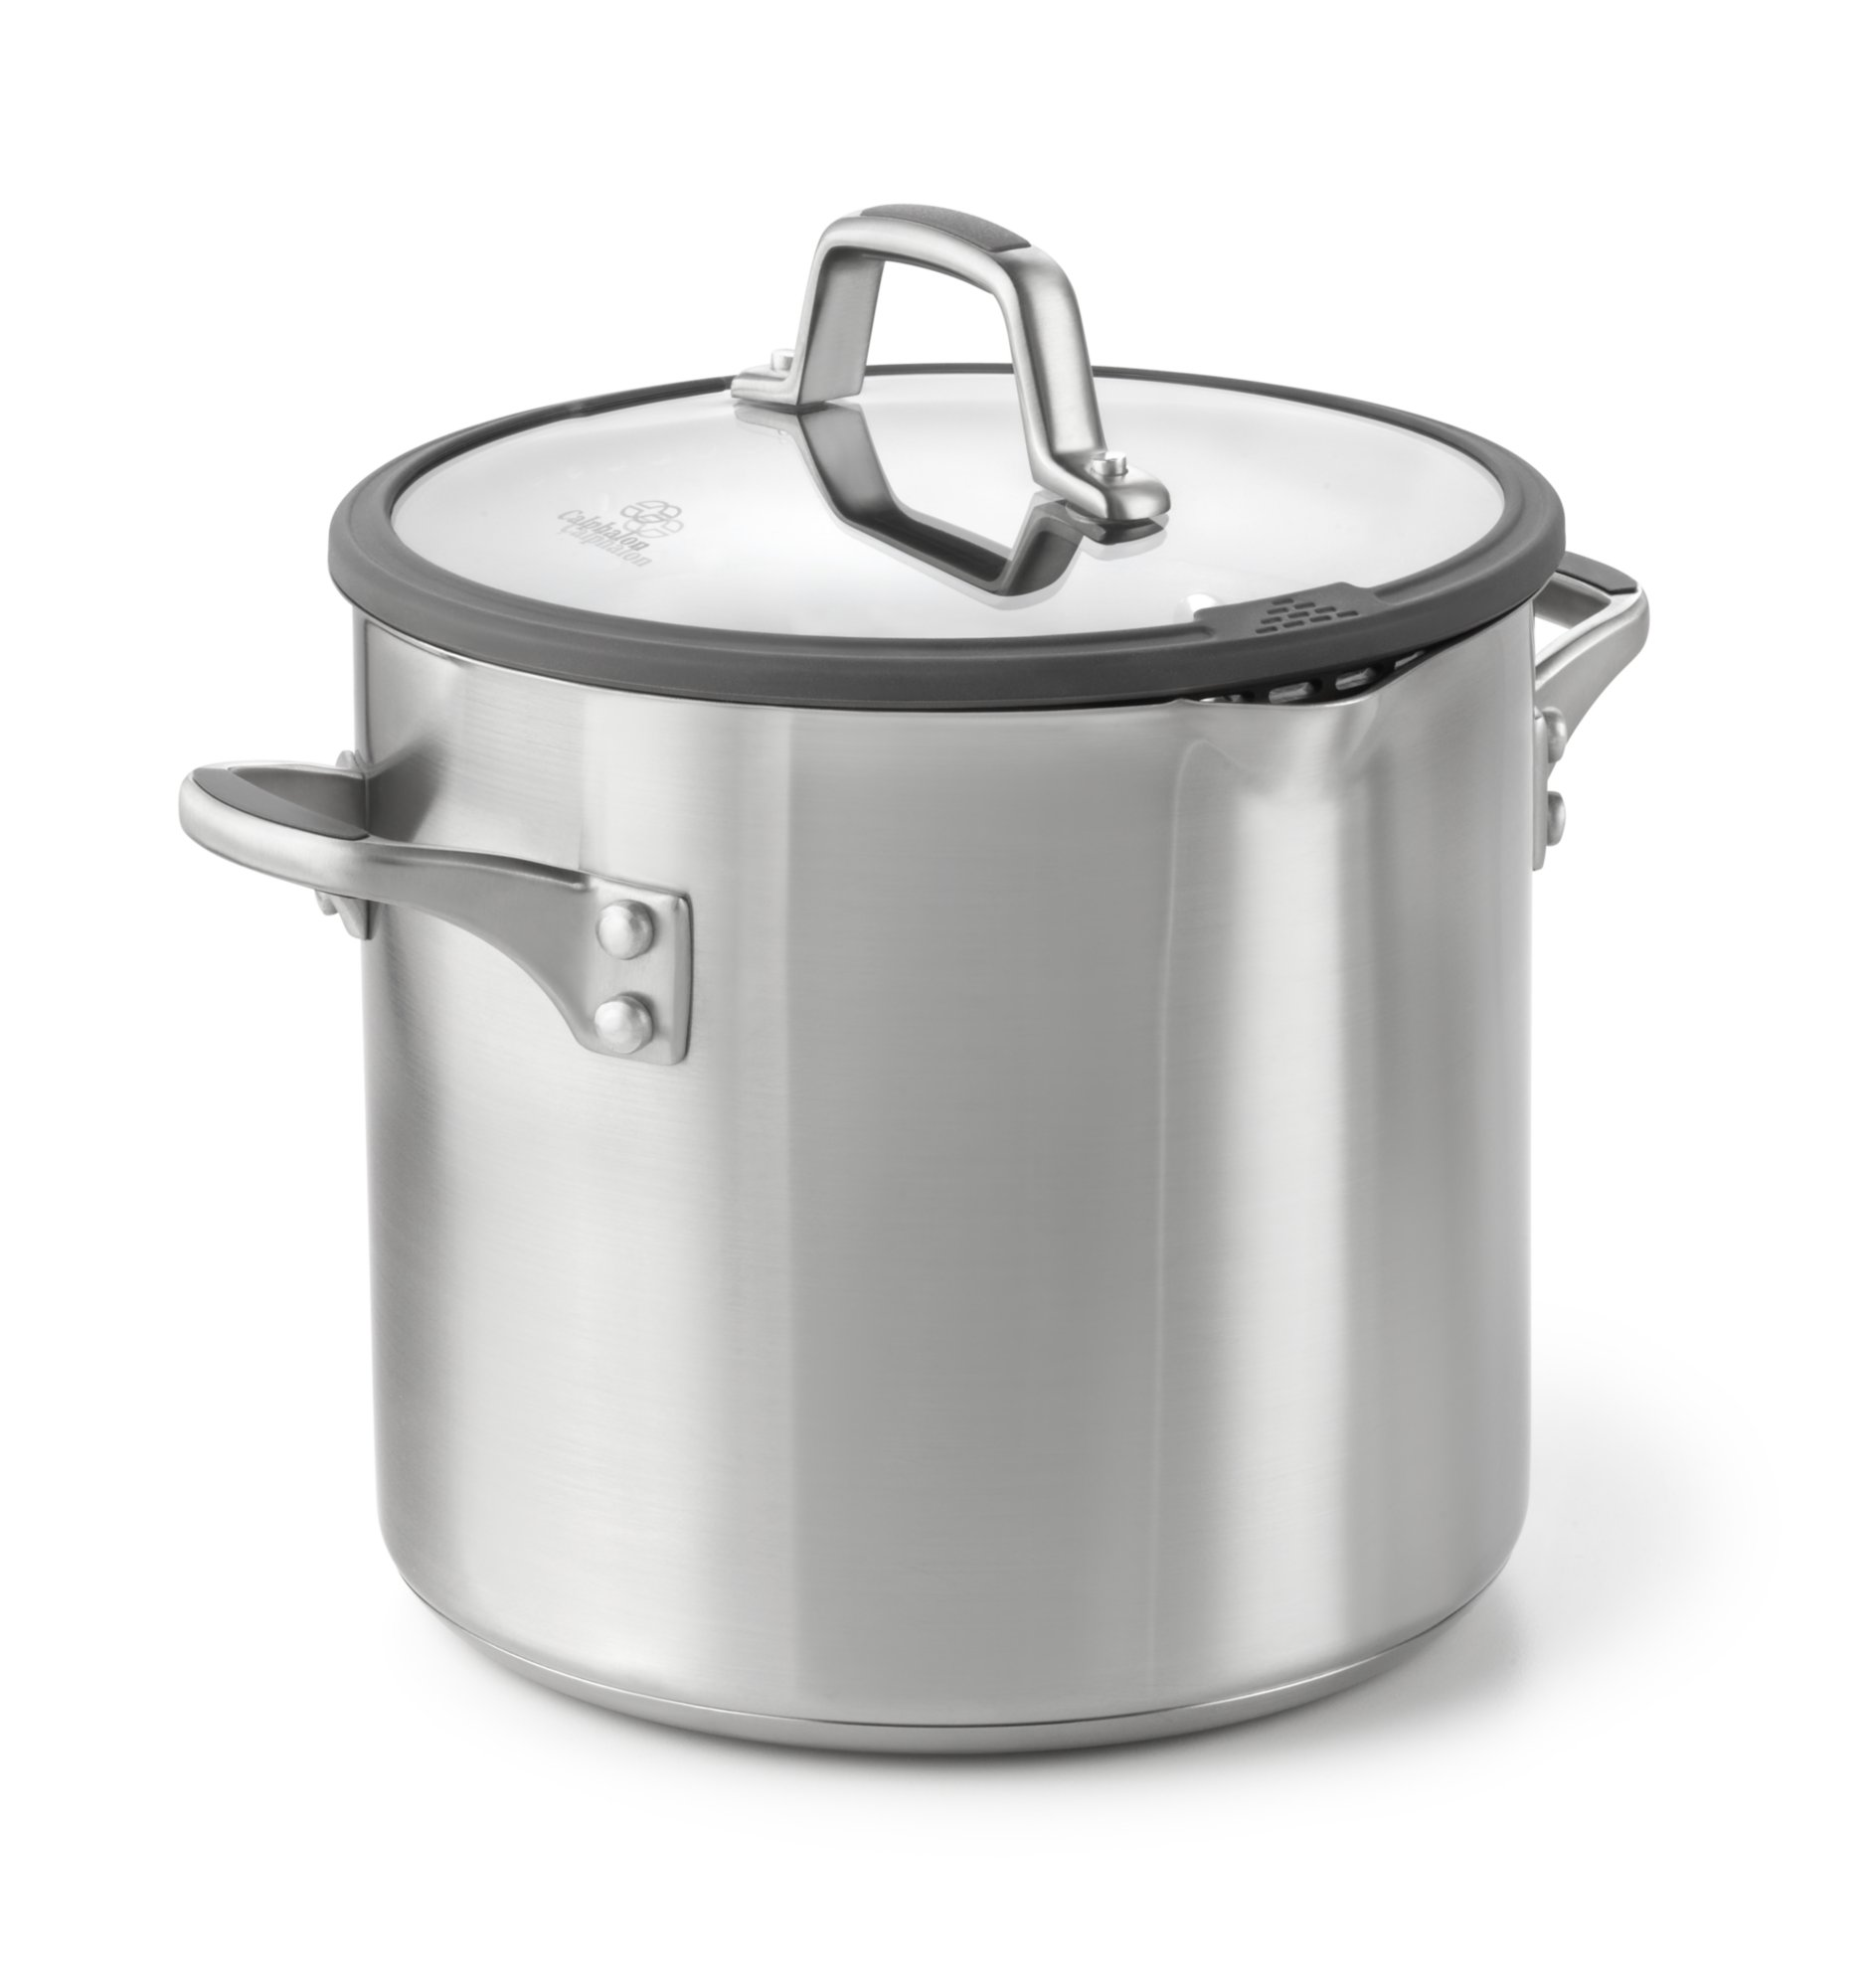 Simply Calphalon Easy System Stainless Steel 8-qt. Stock Pot with Cover